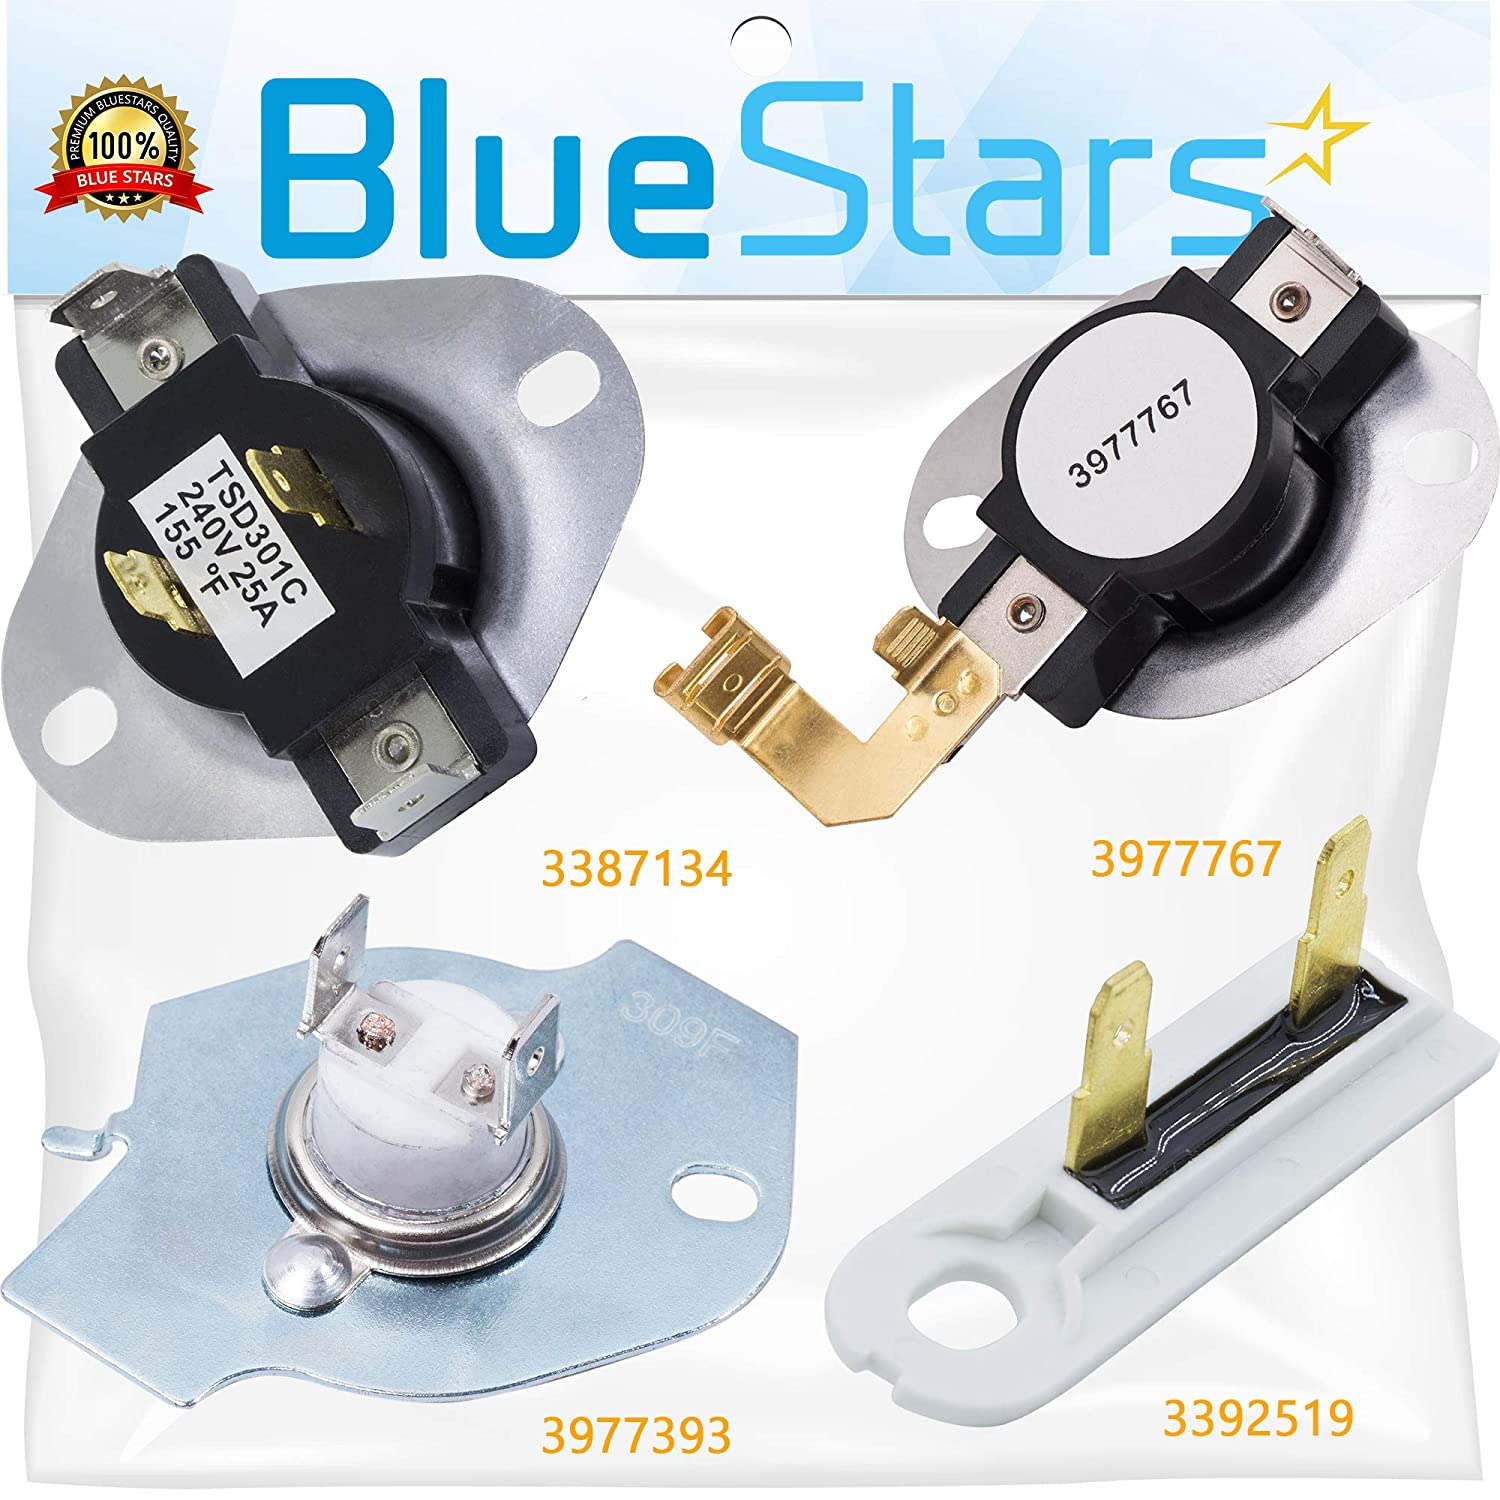 3387134 & 3392519 & 3977767 & 3977393 Dryer Thermostat and Thermal Fuse Kit by Blue Stars - Exact Fit for Whirlpool & Kenmore Dryers